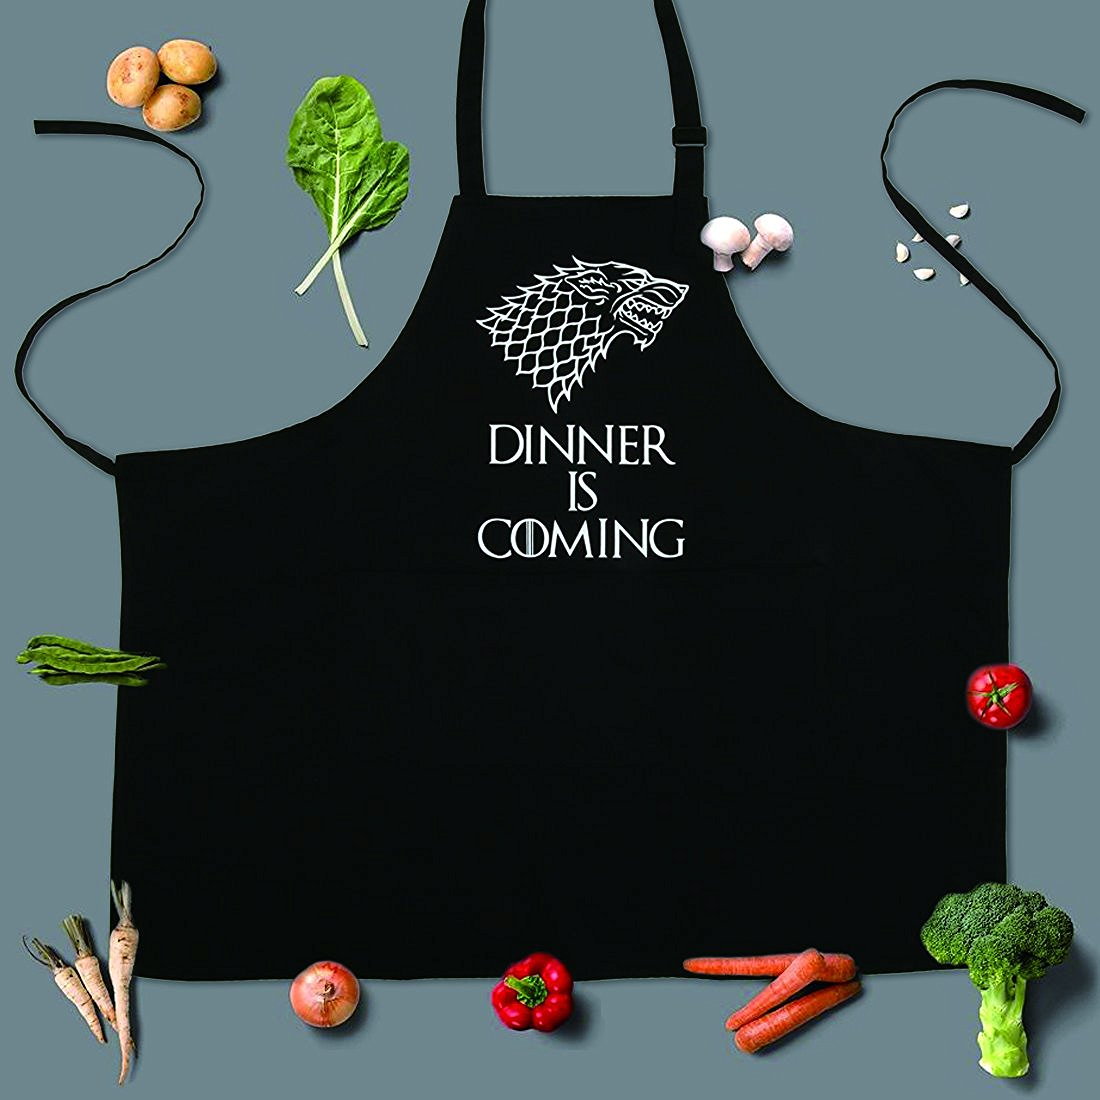 Game of thrones grill apron gift idea for men and women for Game of thrones christmas gifts 2016